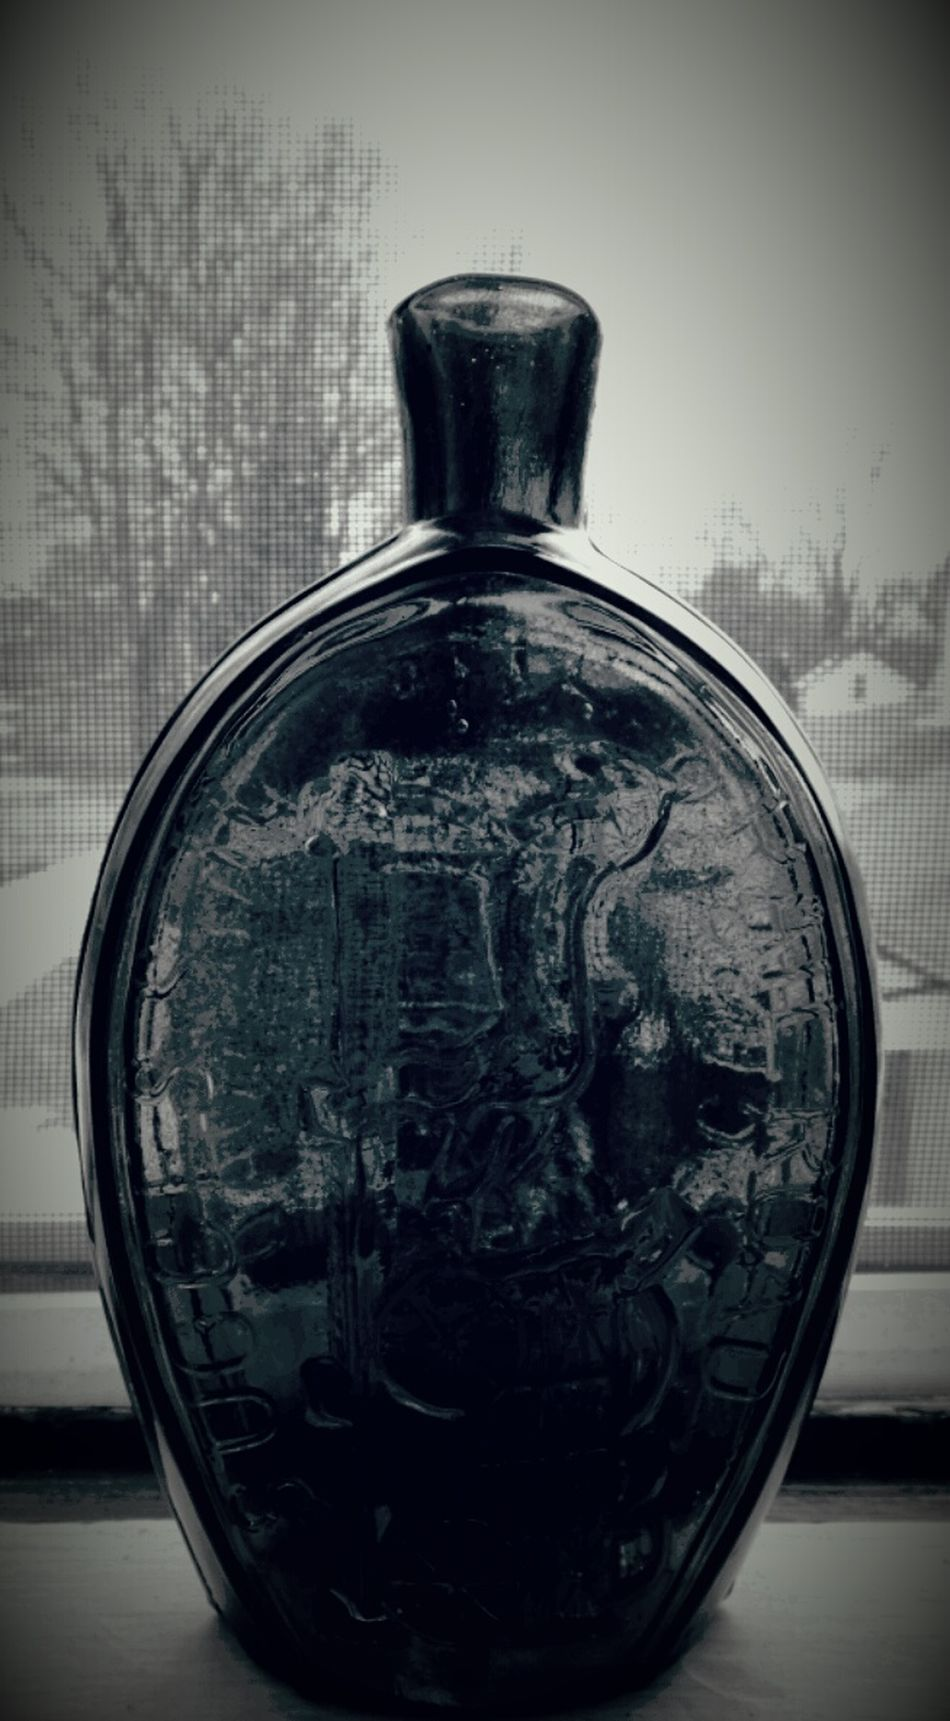 Old Railroad Hand Blown Glass Wiskey Bottle Portrait Of America In Last Century OpenEdit Black And White Photography